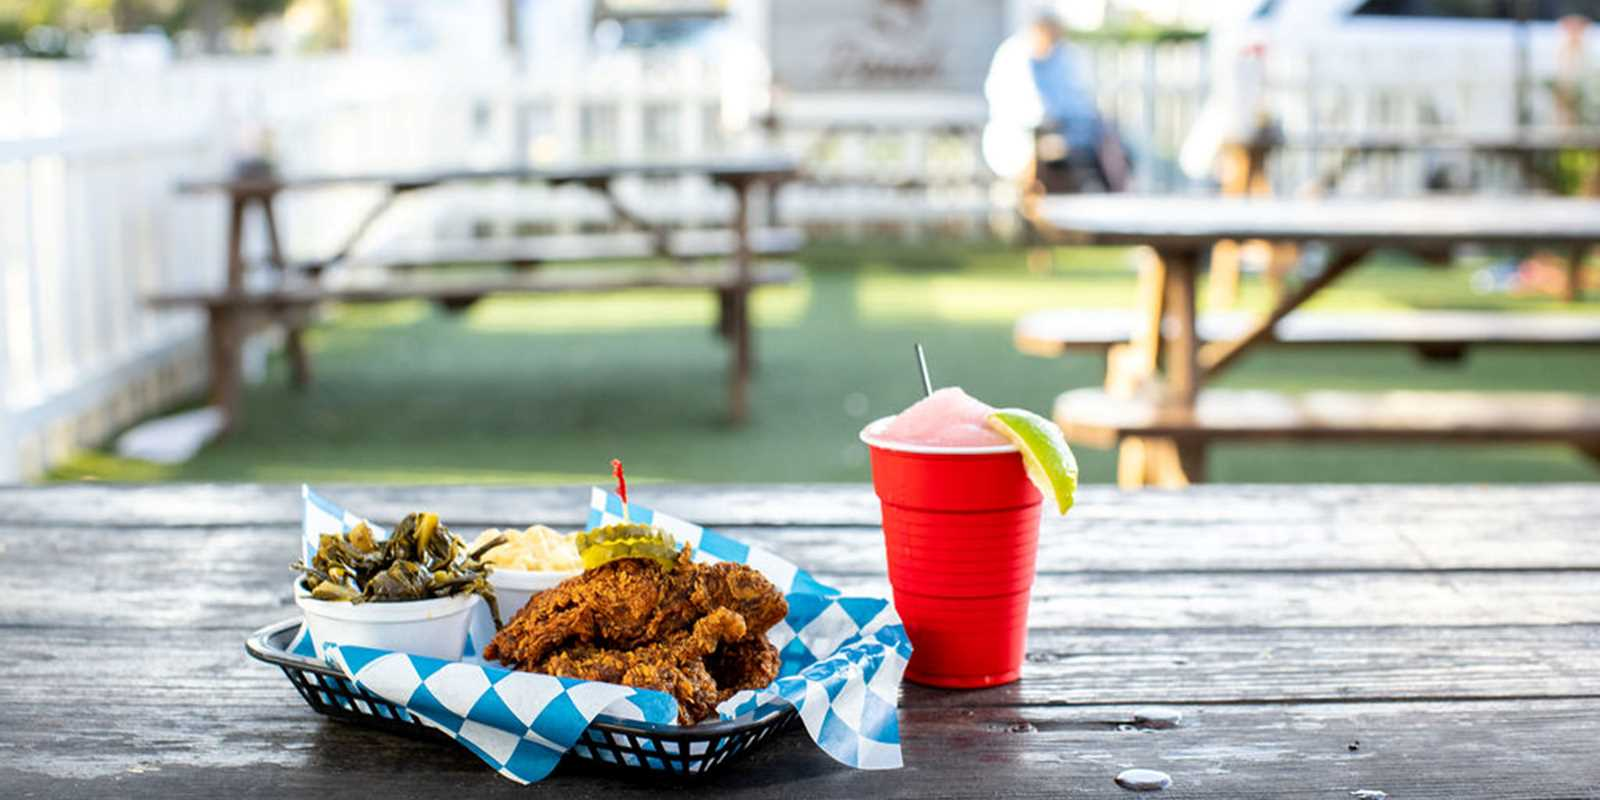 HOT CHICKEN AND FROSE